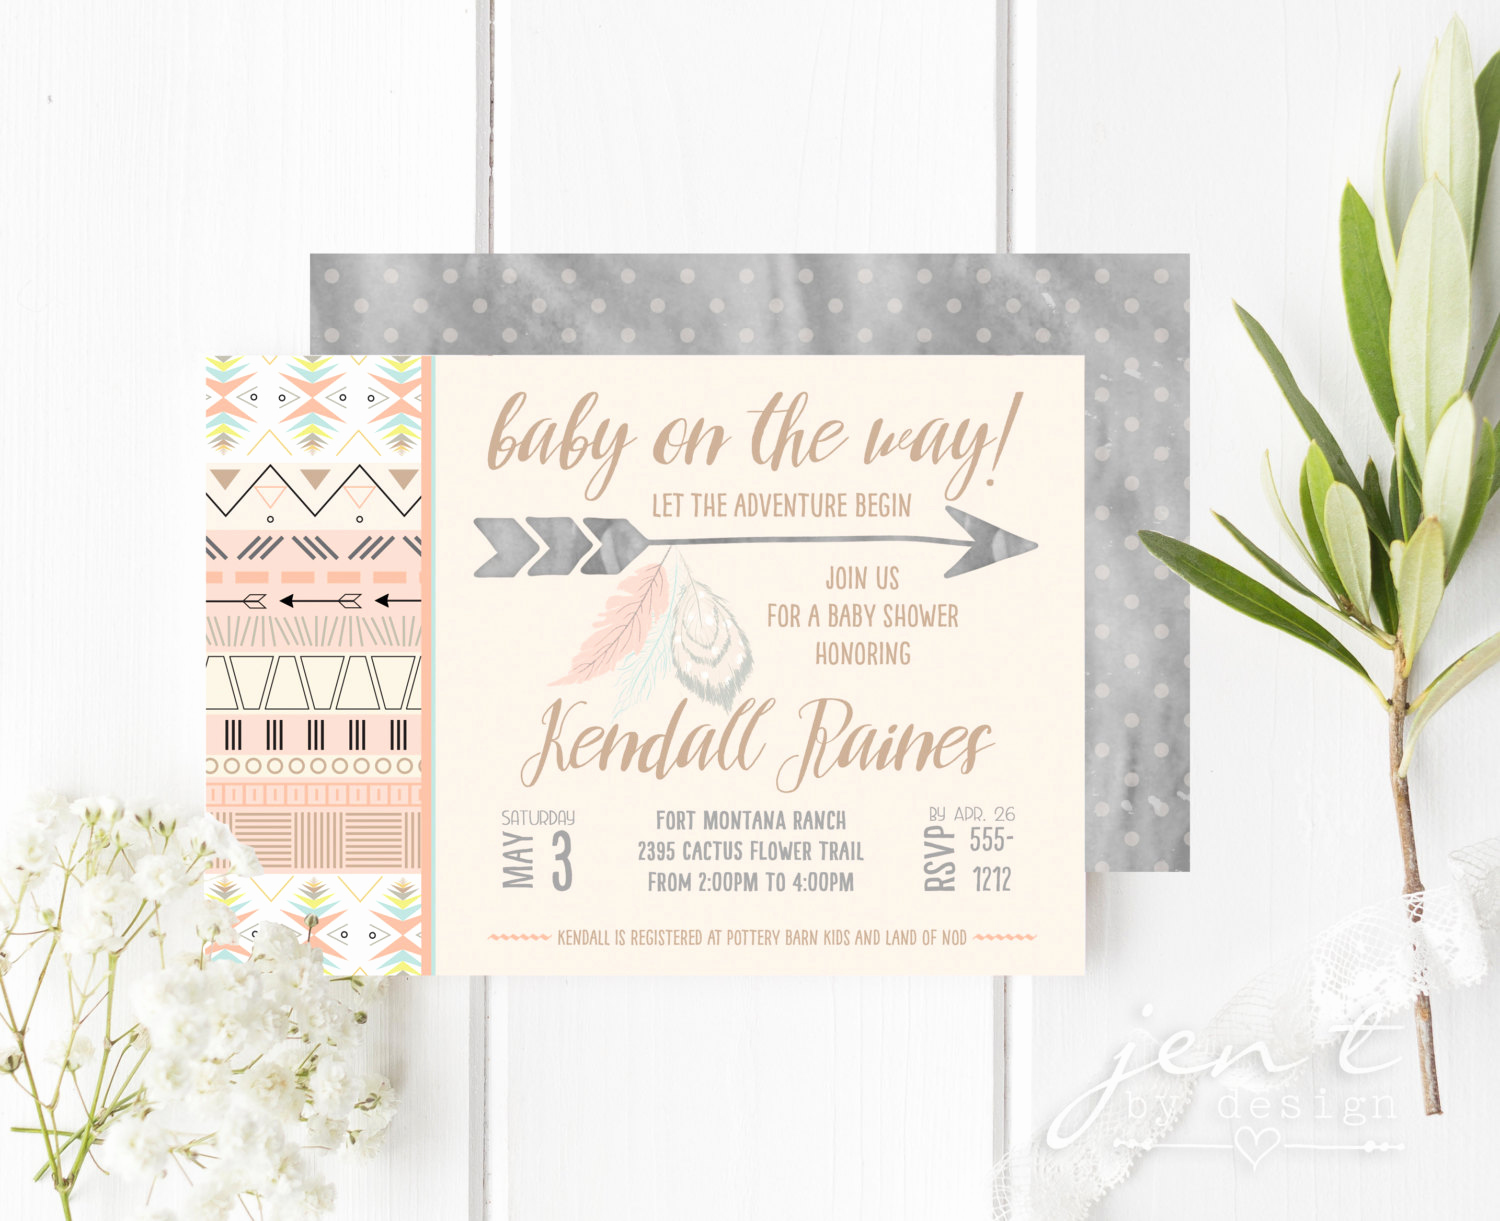 Boho Baby Shower Invitation Elegant Boho Chic Aztec Baby Shower Invitations